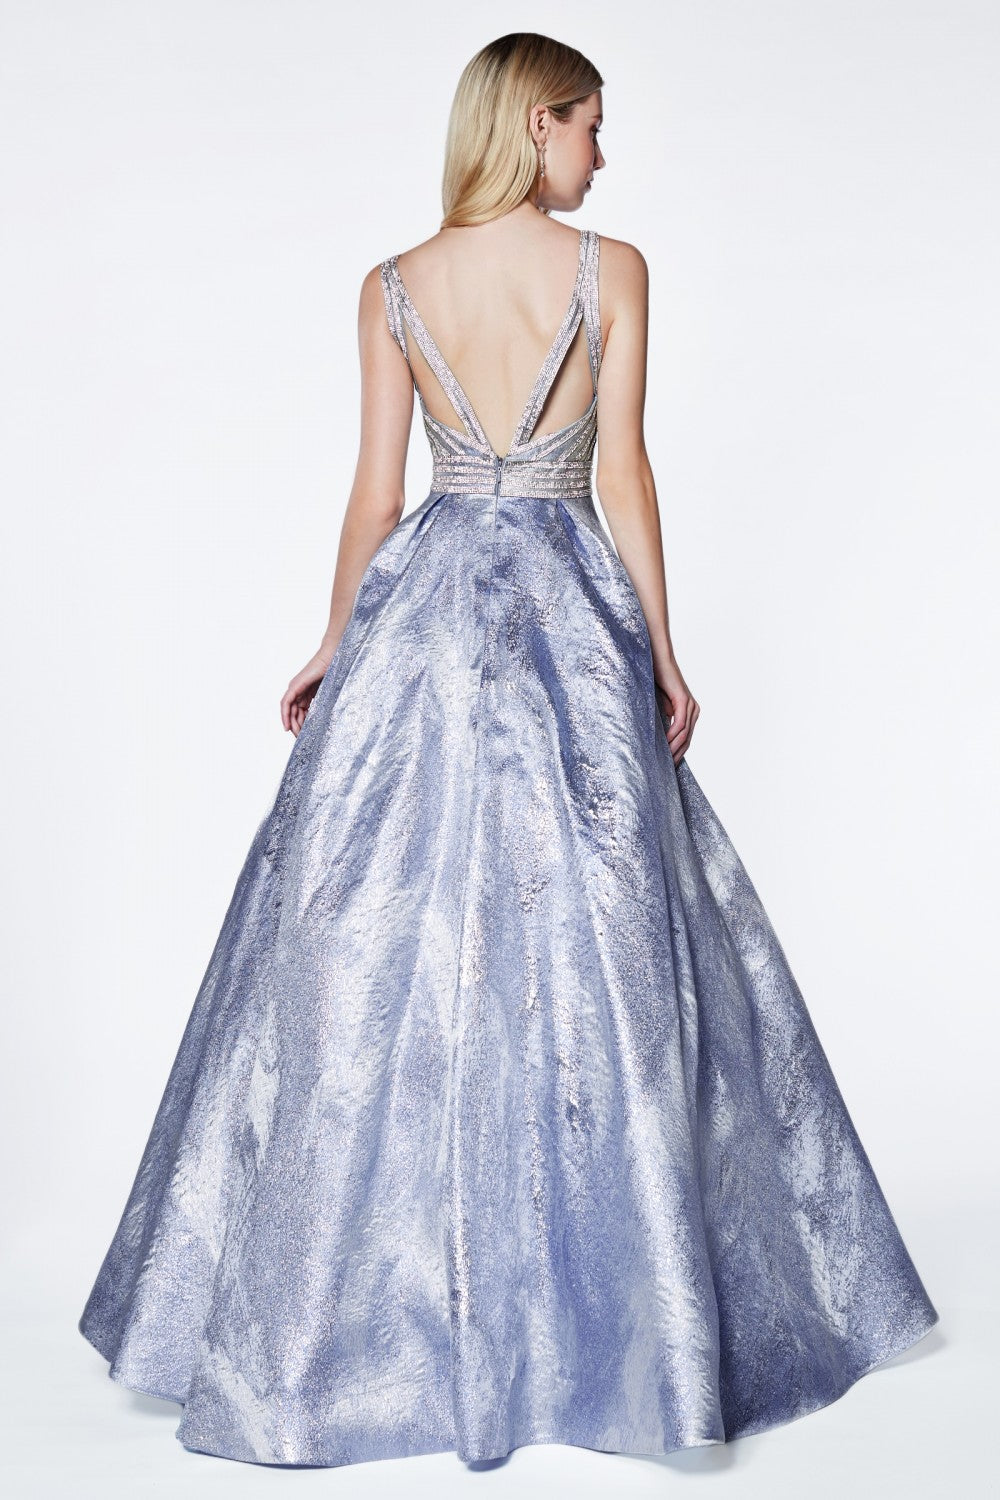 Brocade Ball Gown With Beaded Bodice And Deep Plunging Neckline